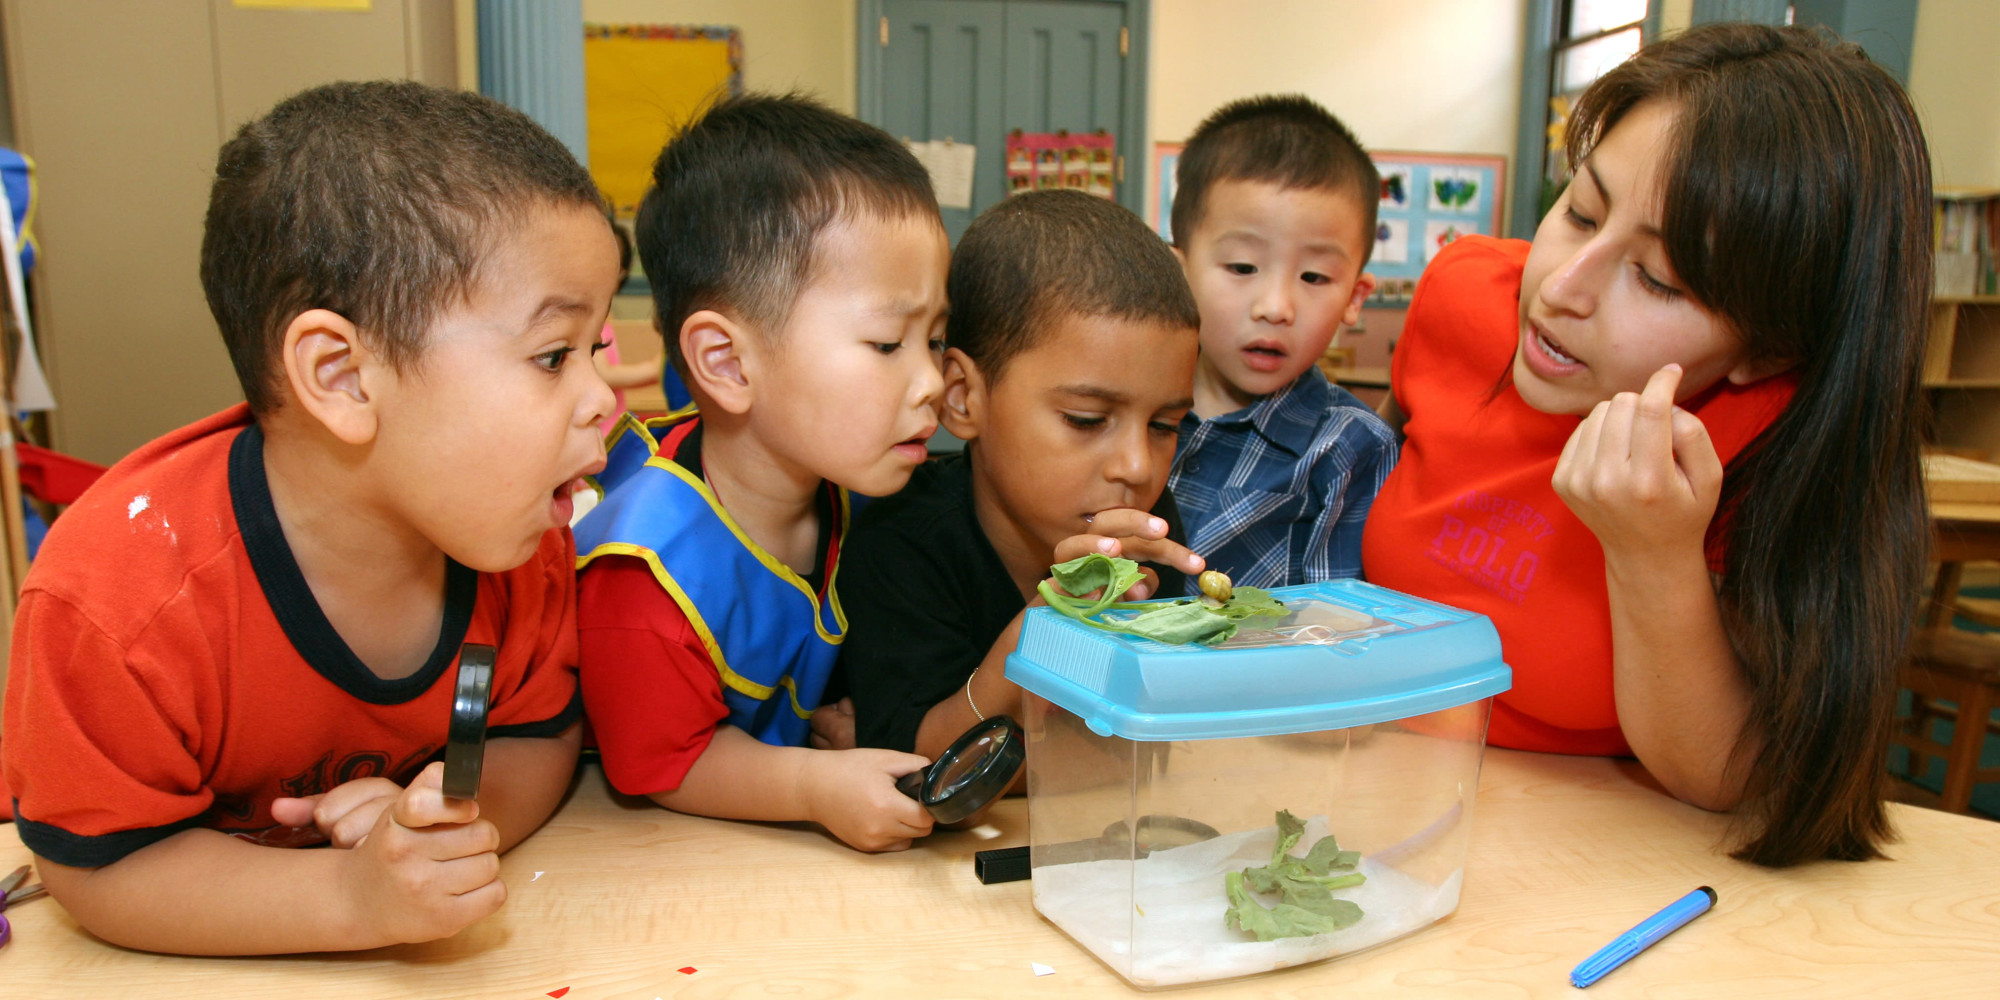 the kindergarten teacher View salary range, bonus & benefits information for teacher kindergarten jobs in the united states or search by specific us and canadian cities and towns view open positions, job descriptions and other statistics related to teacher kindergarten jobs.